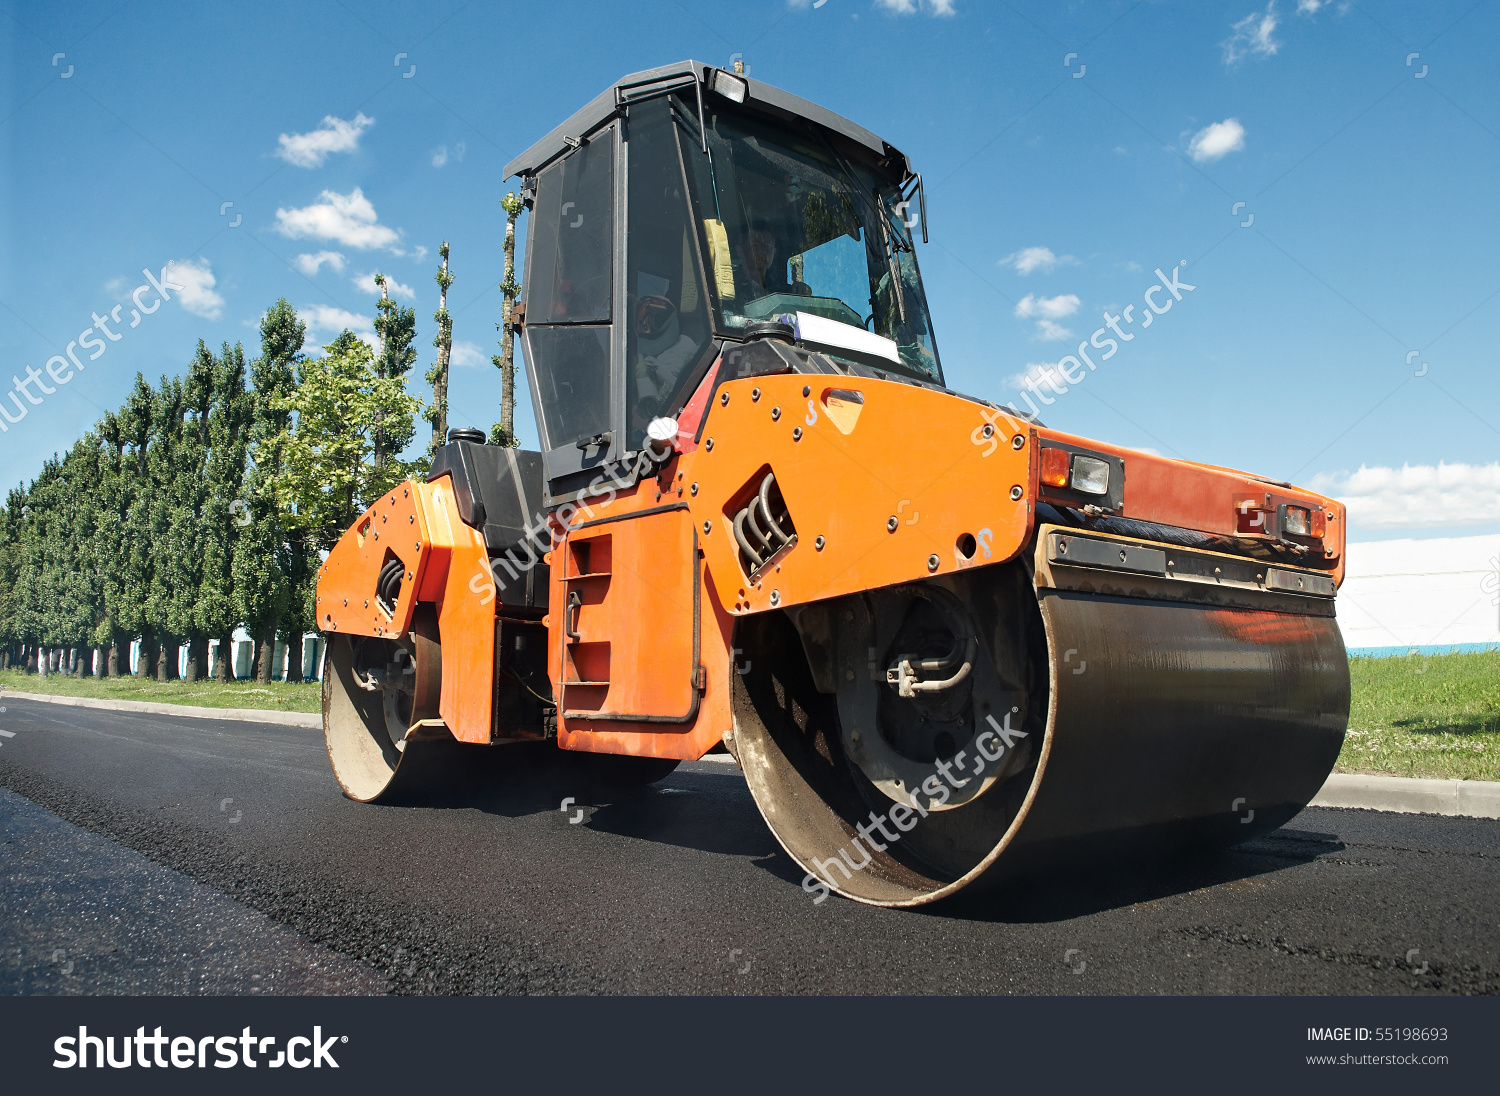 Heavy Vibration Roller Asphalt Pavement Works Stock Photo 55198693.